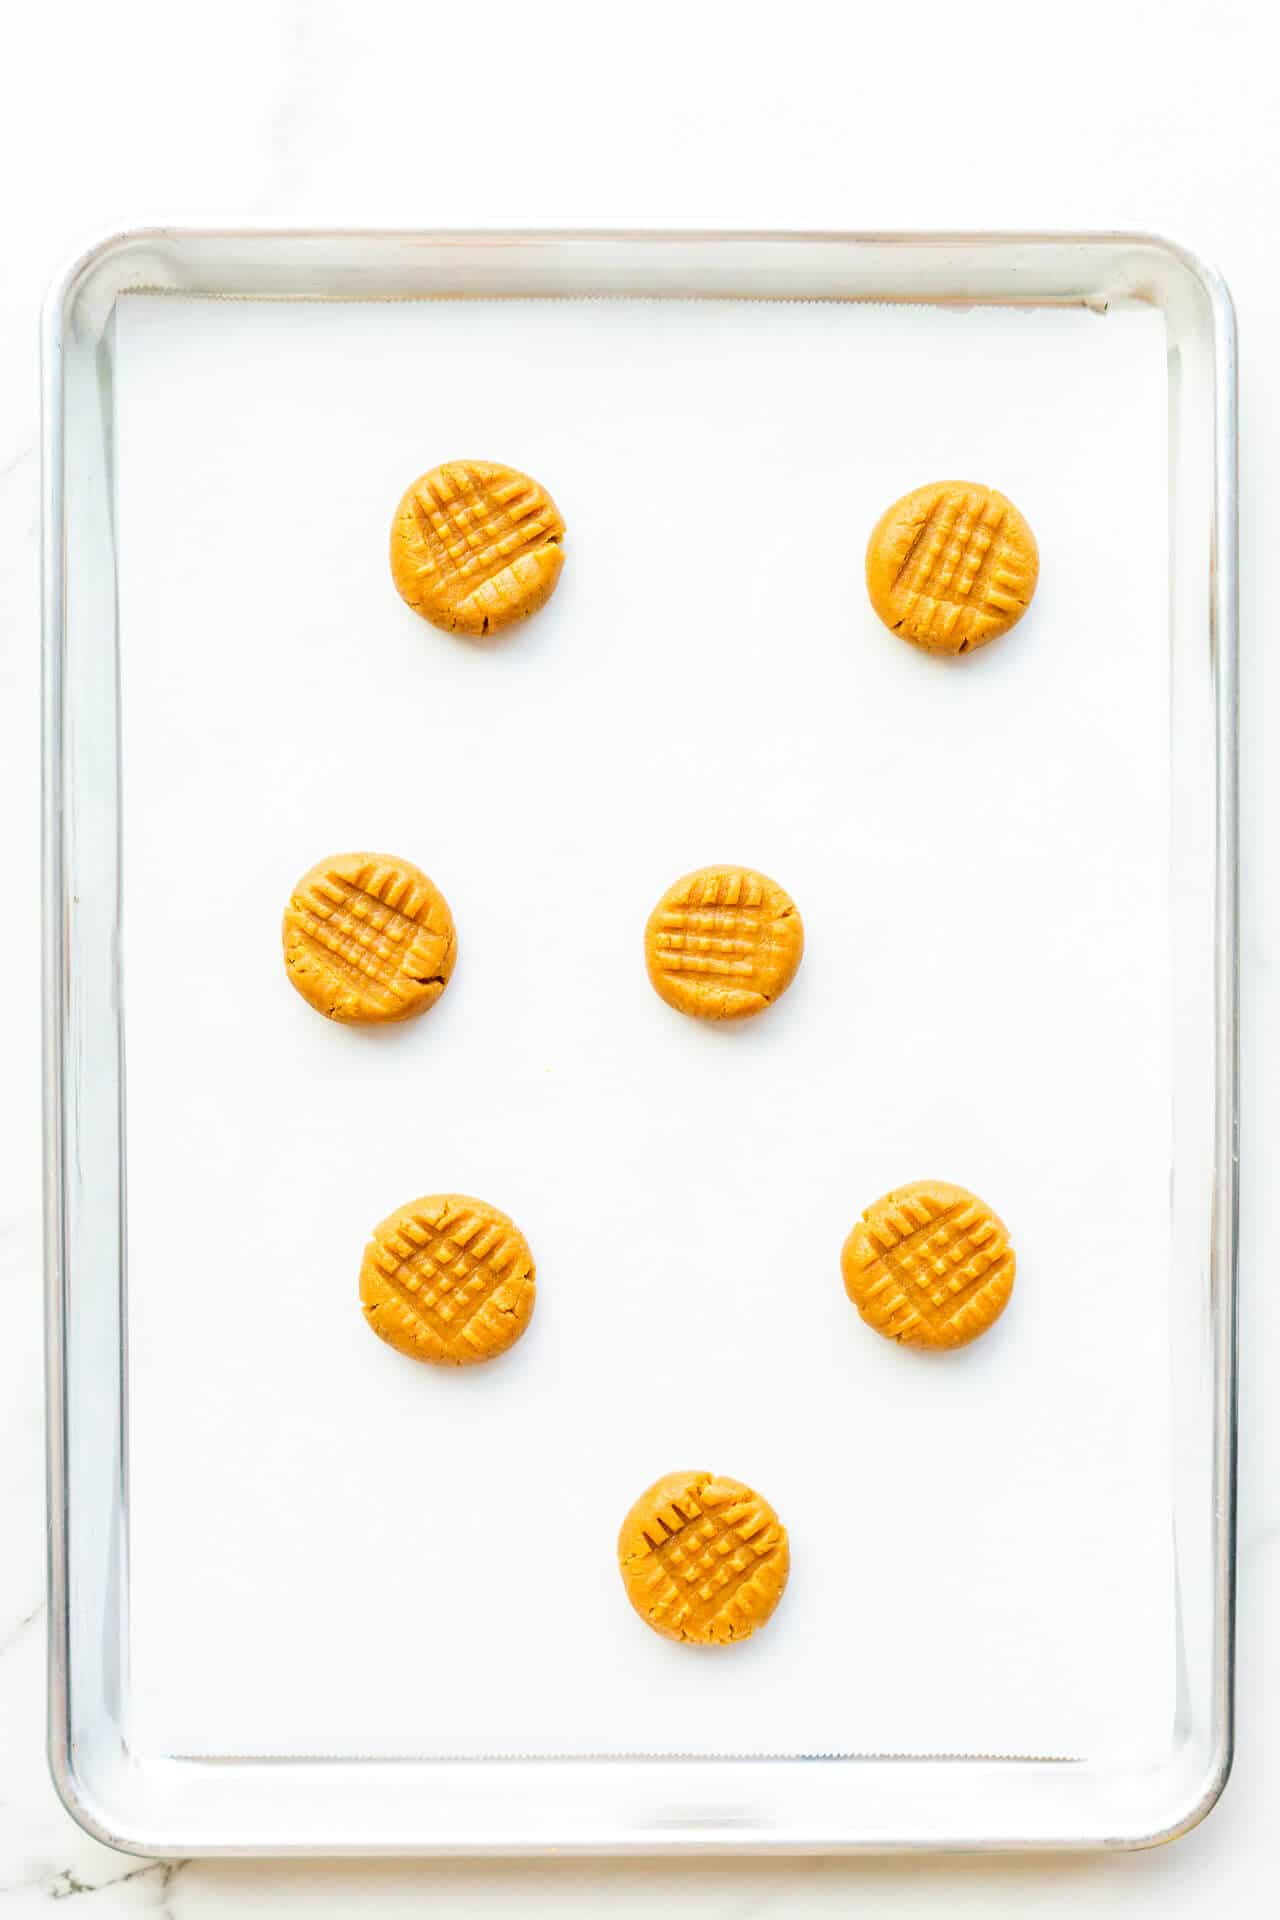 Flourless peanut butter cookies with criss cross pattern